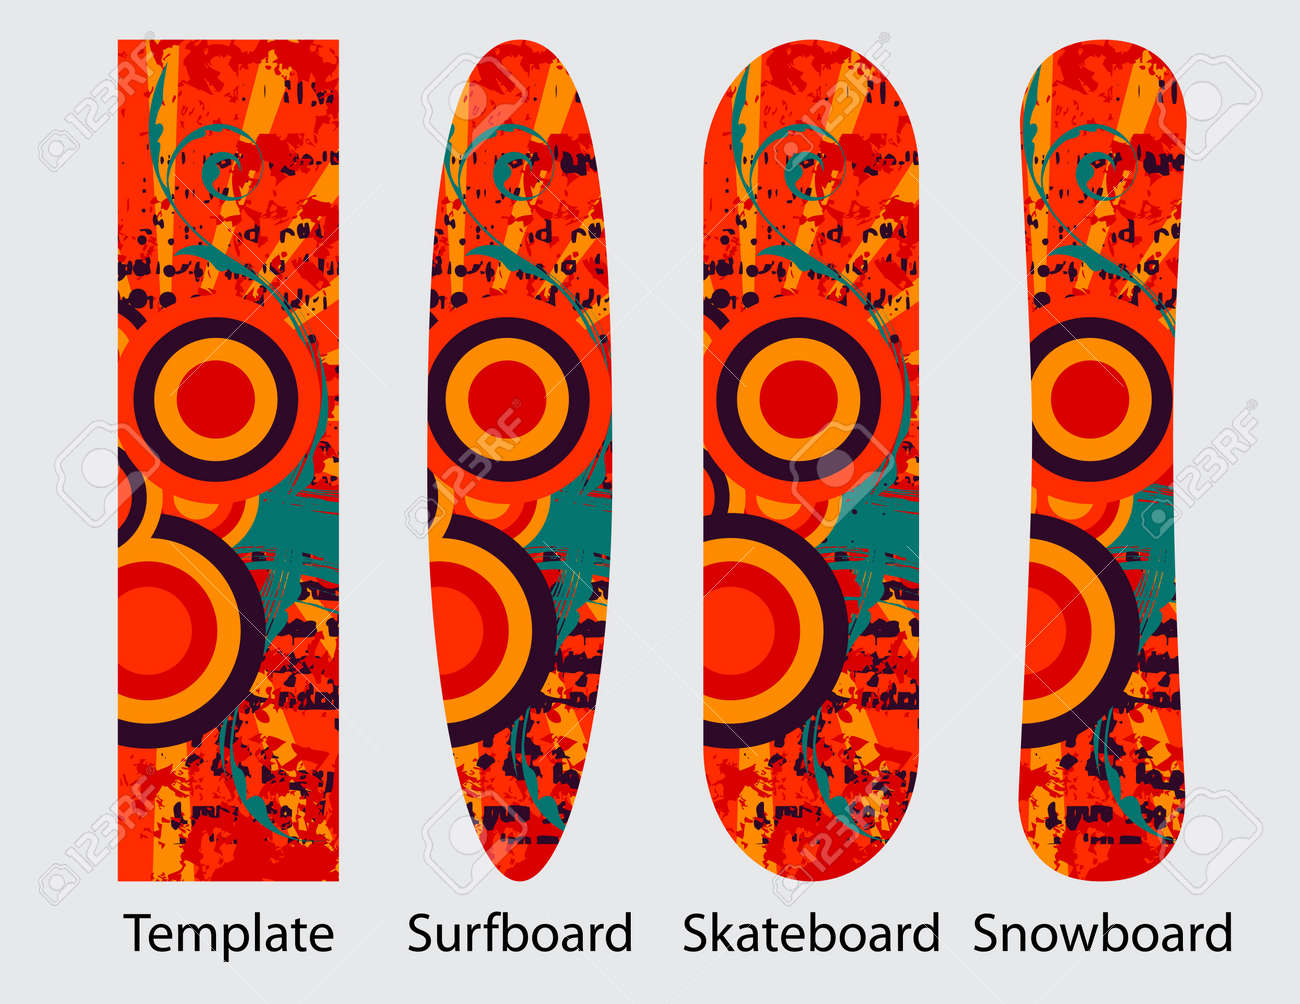 Abstract Template For Snowboard Skateboard And Surfboard Decoration